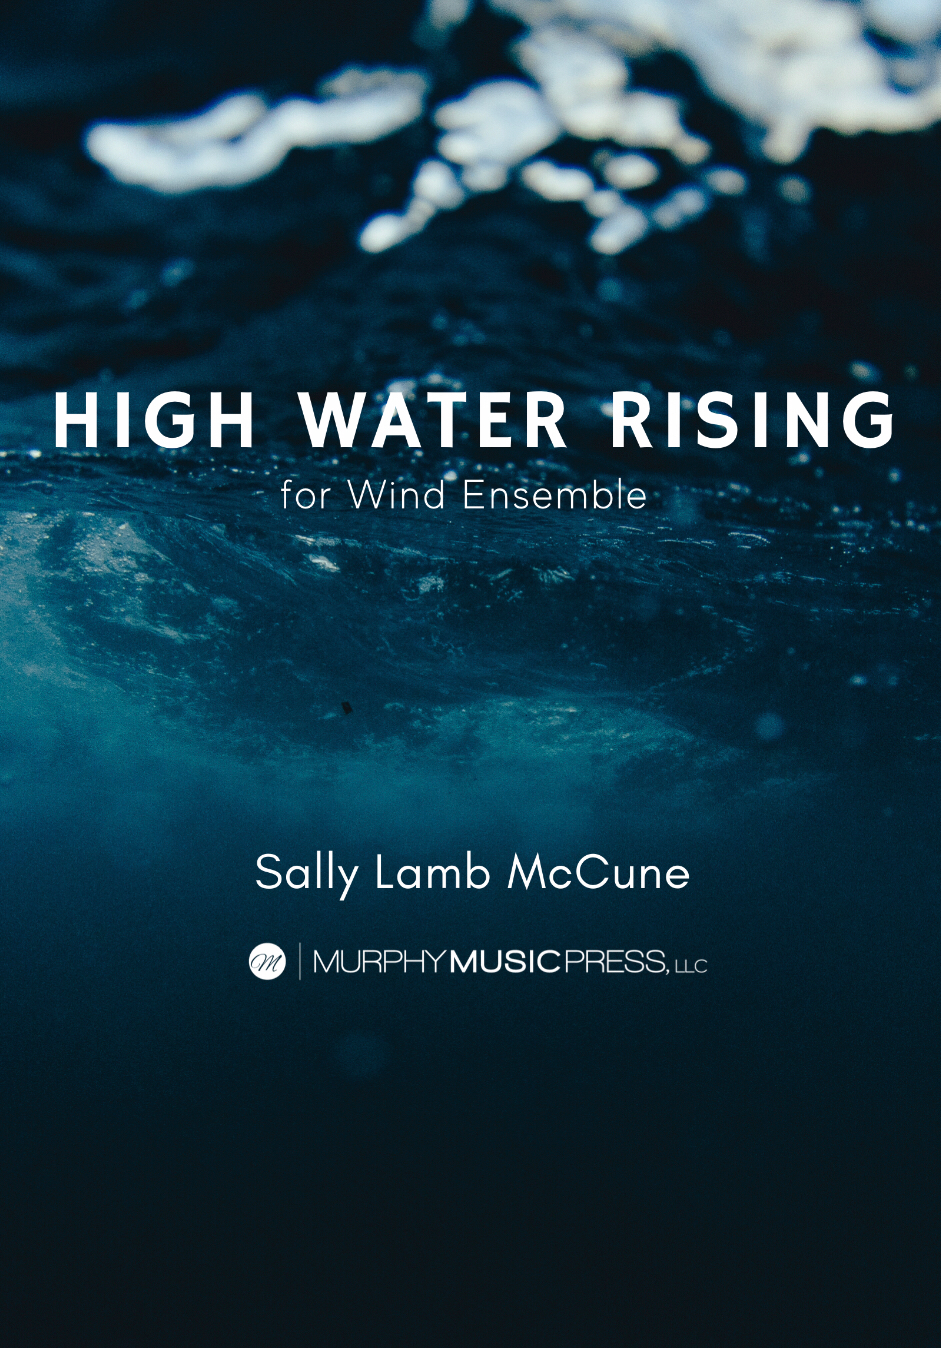 High Water Rising (Score Only) by Sally Lamb McCune